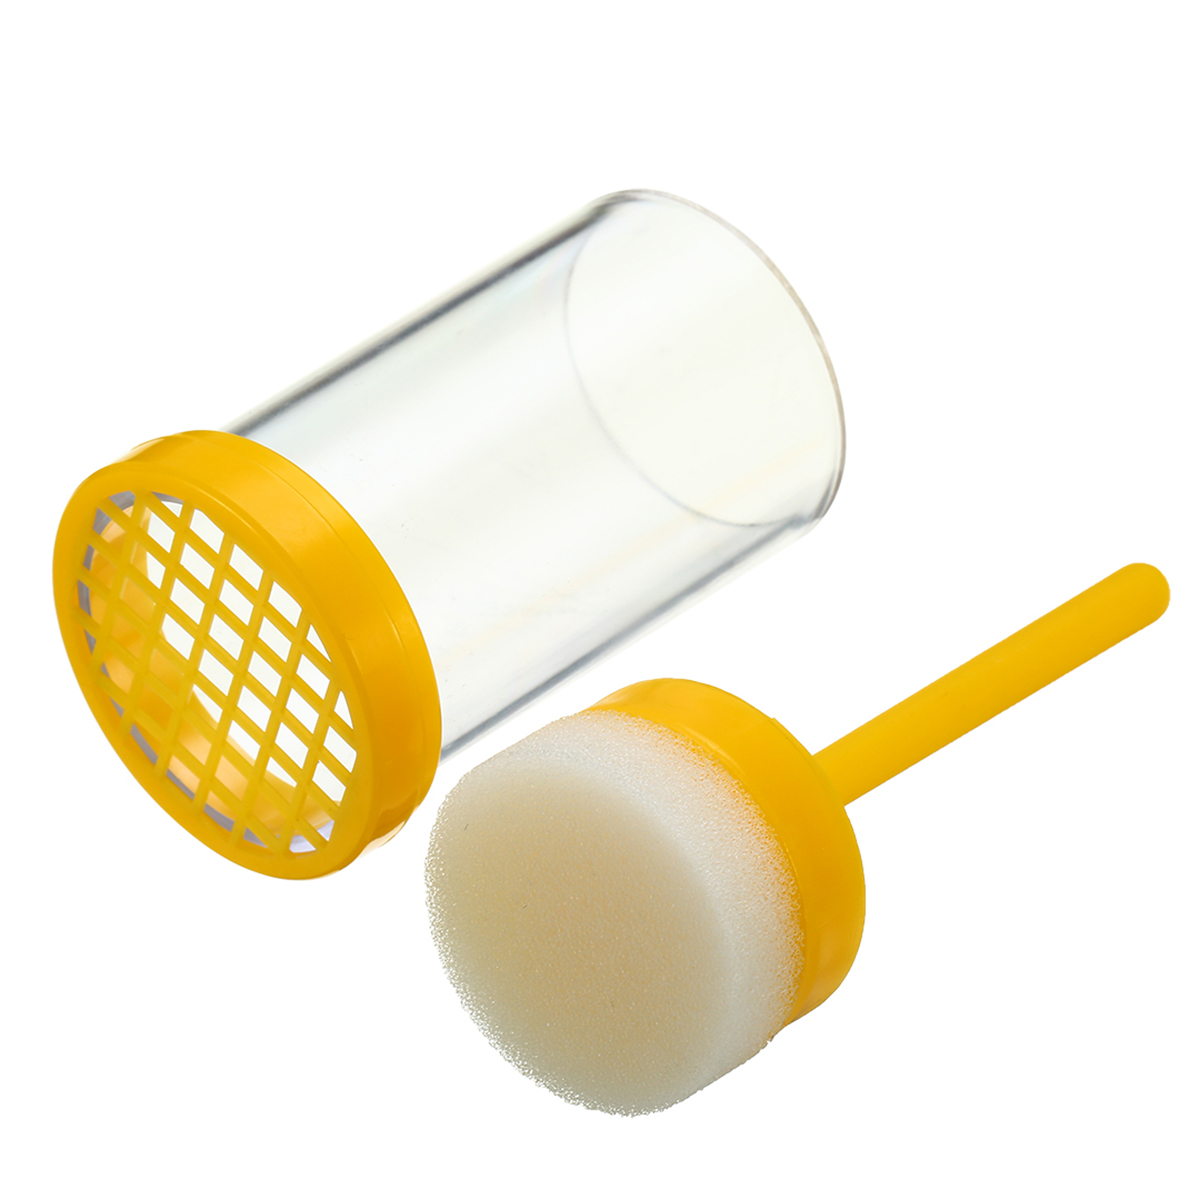 1Pc Plastic Queen Bee Marking Cage Marker Bottle w/ Plunger Beekeeping Equipment For Capture The Queen Bee Without Hurting It1Pc Plastic Queen Bee Marking Cage Marker Bottle w/ Plunger Beekeeping Equipment For Capture The Queen Bee Without Hurting It